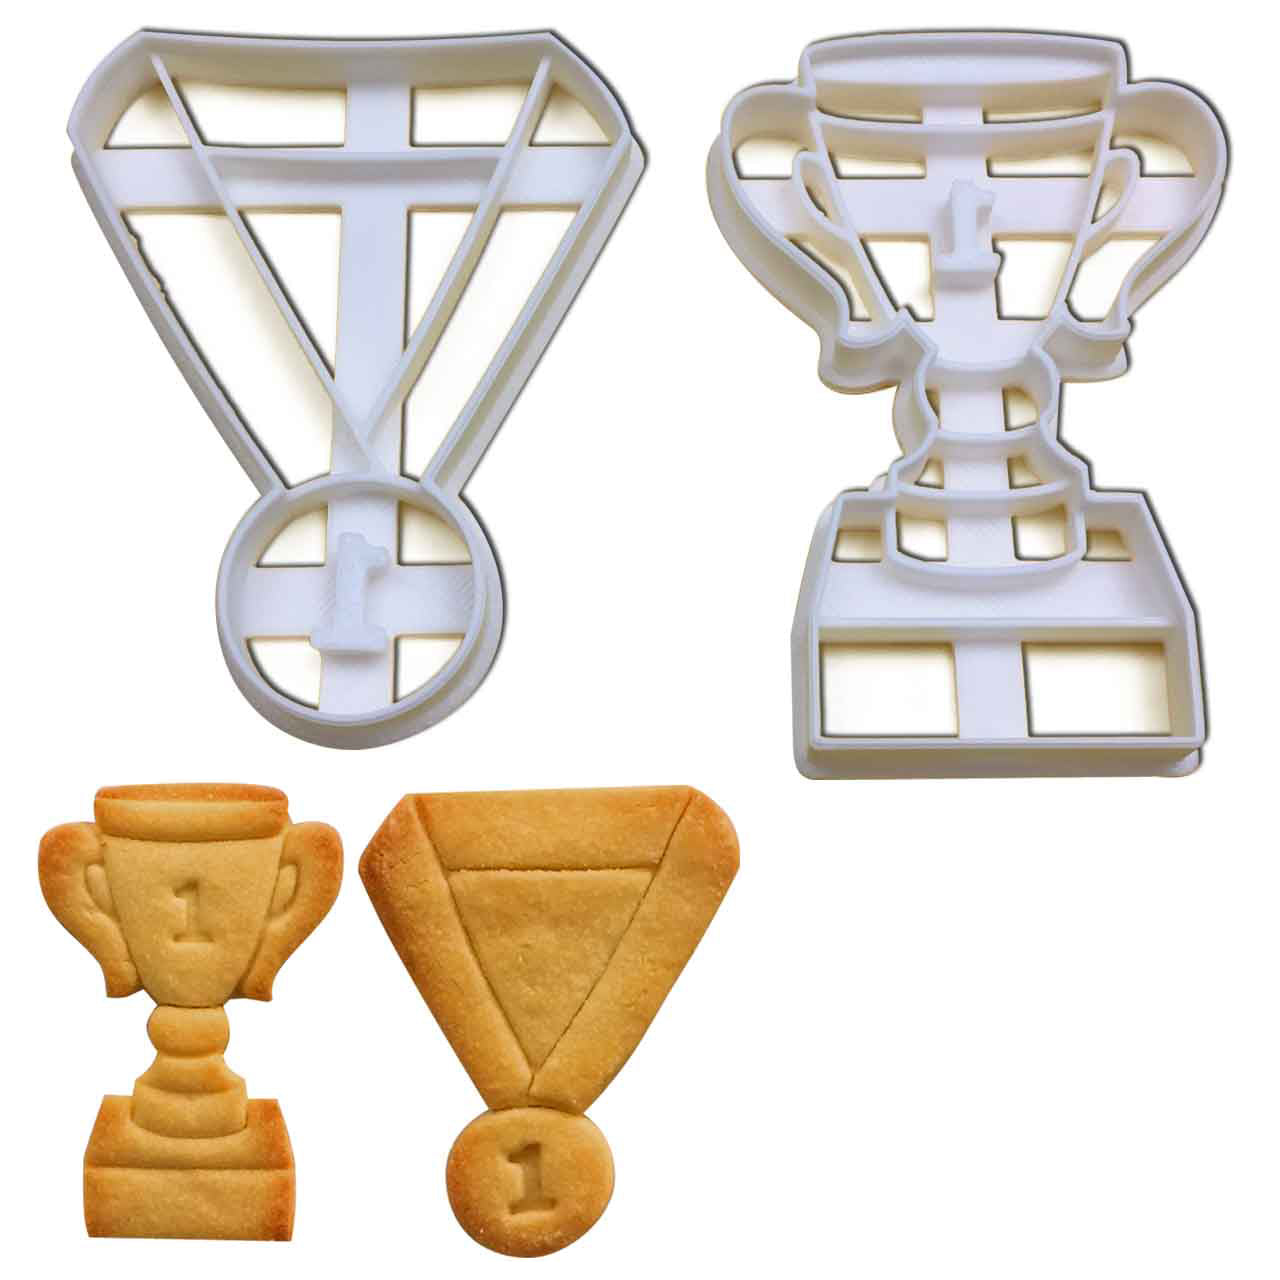 set of 2 trophy and medal cookie cutters